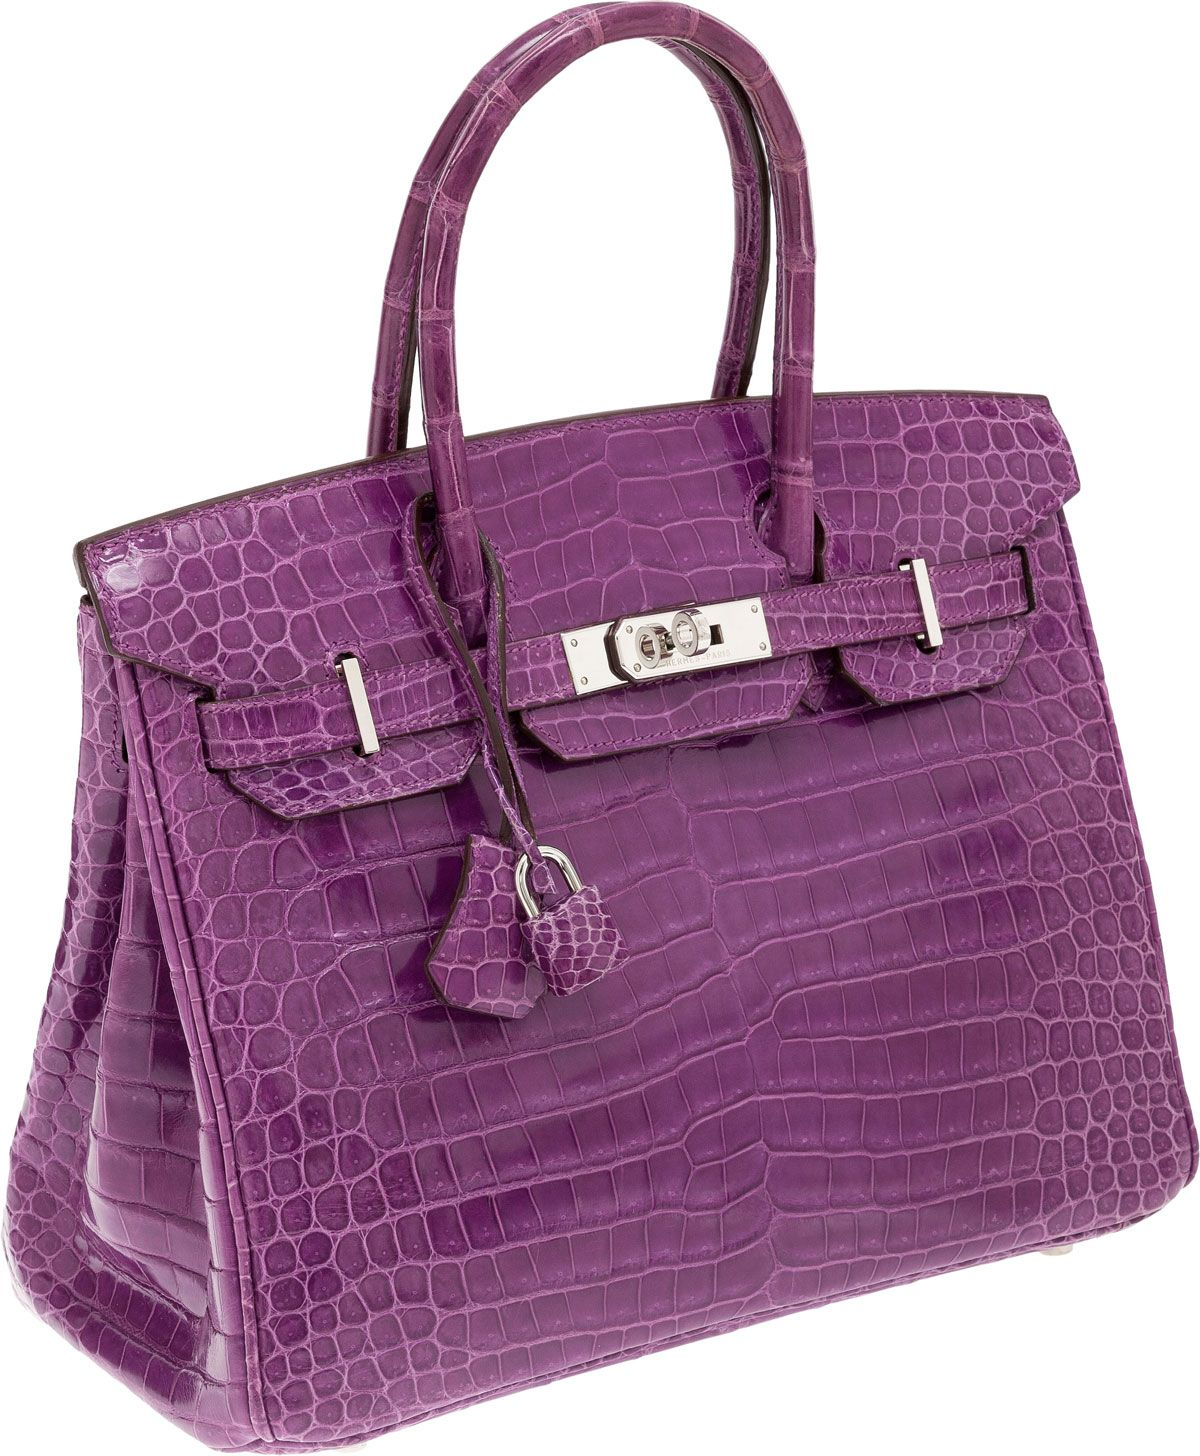 Hermes Very Rare 30cm Shiny Violet Porosus Crocodile Birkin Bag with Palladium  Hardware 7f1bba8aa78d4